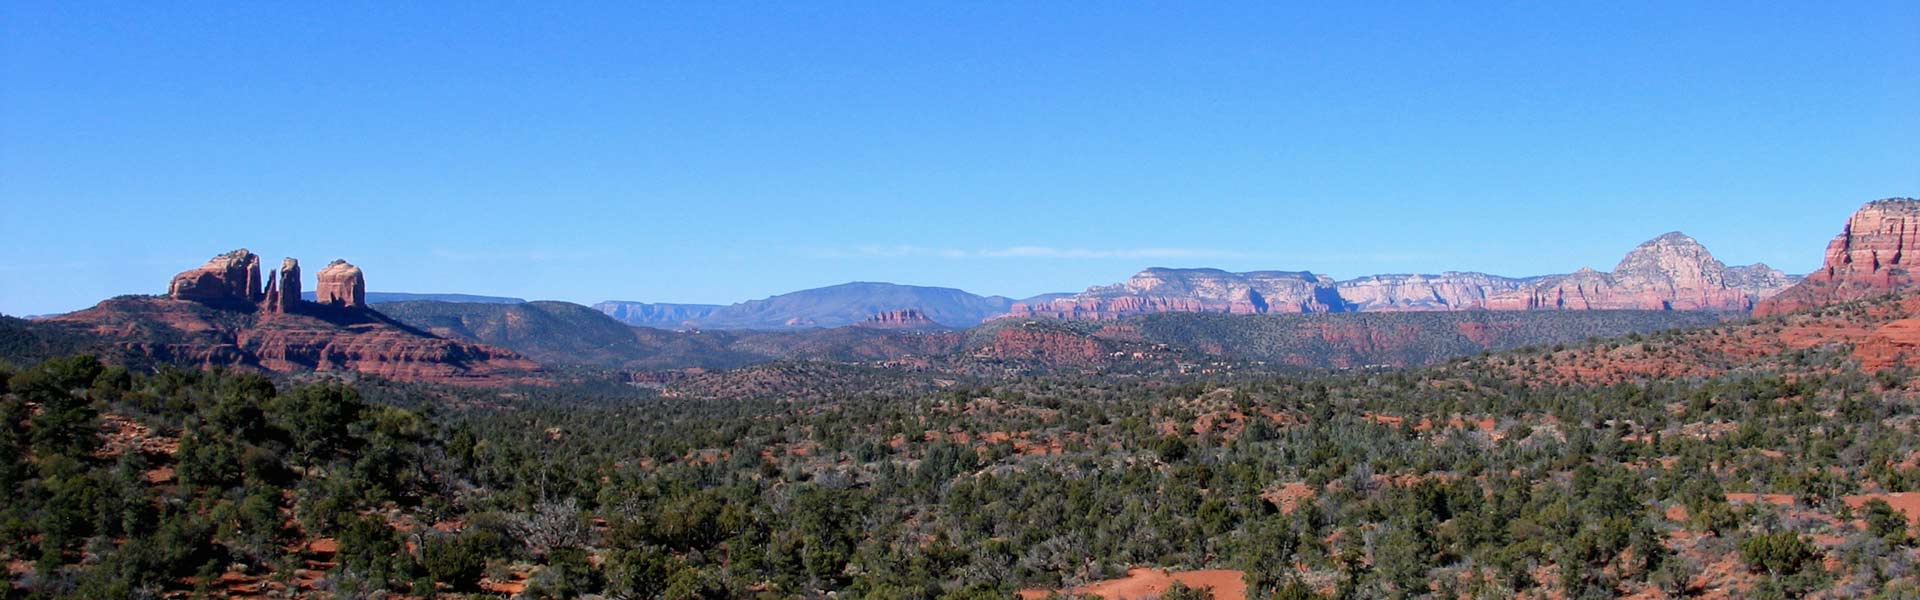 Sedona Philosophy